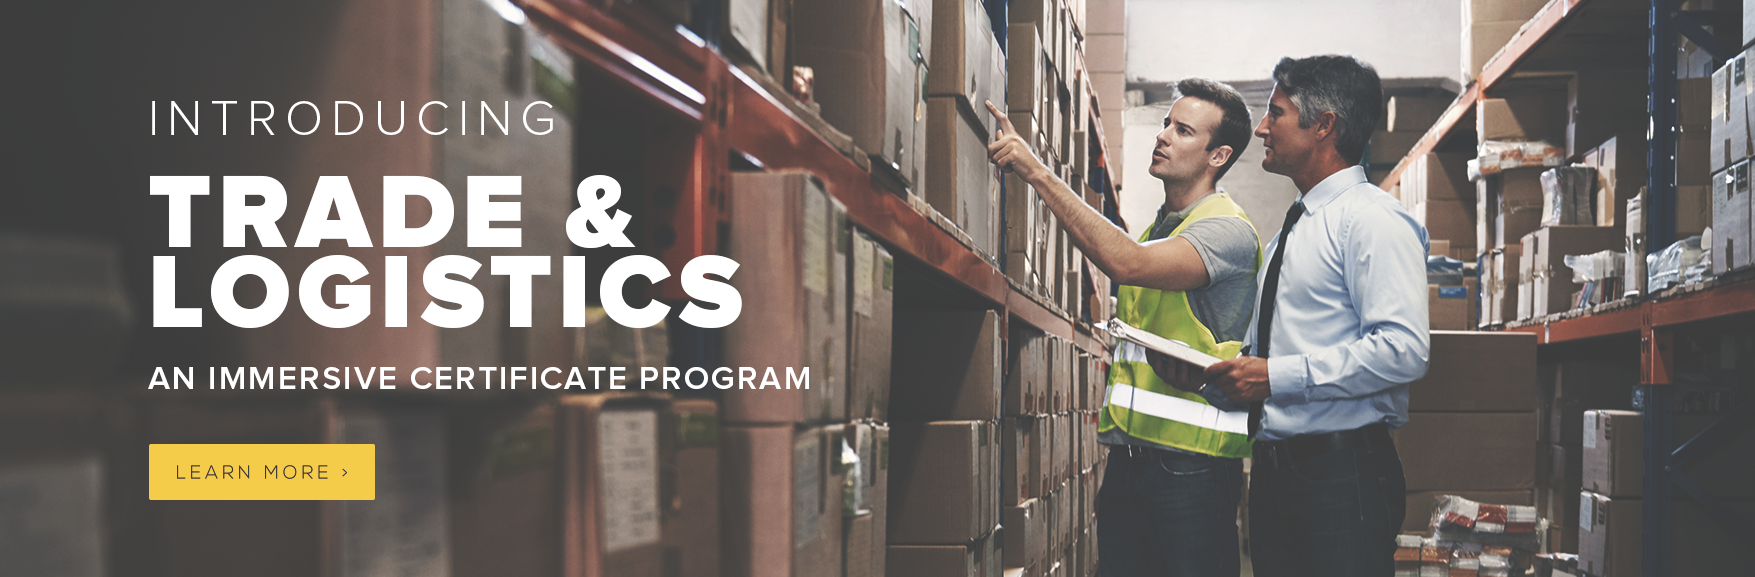 Introducing Trade & Logistics - An immersive certificate program